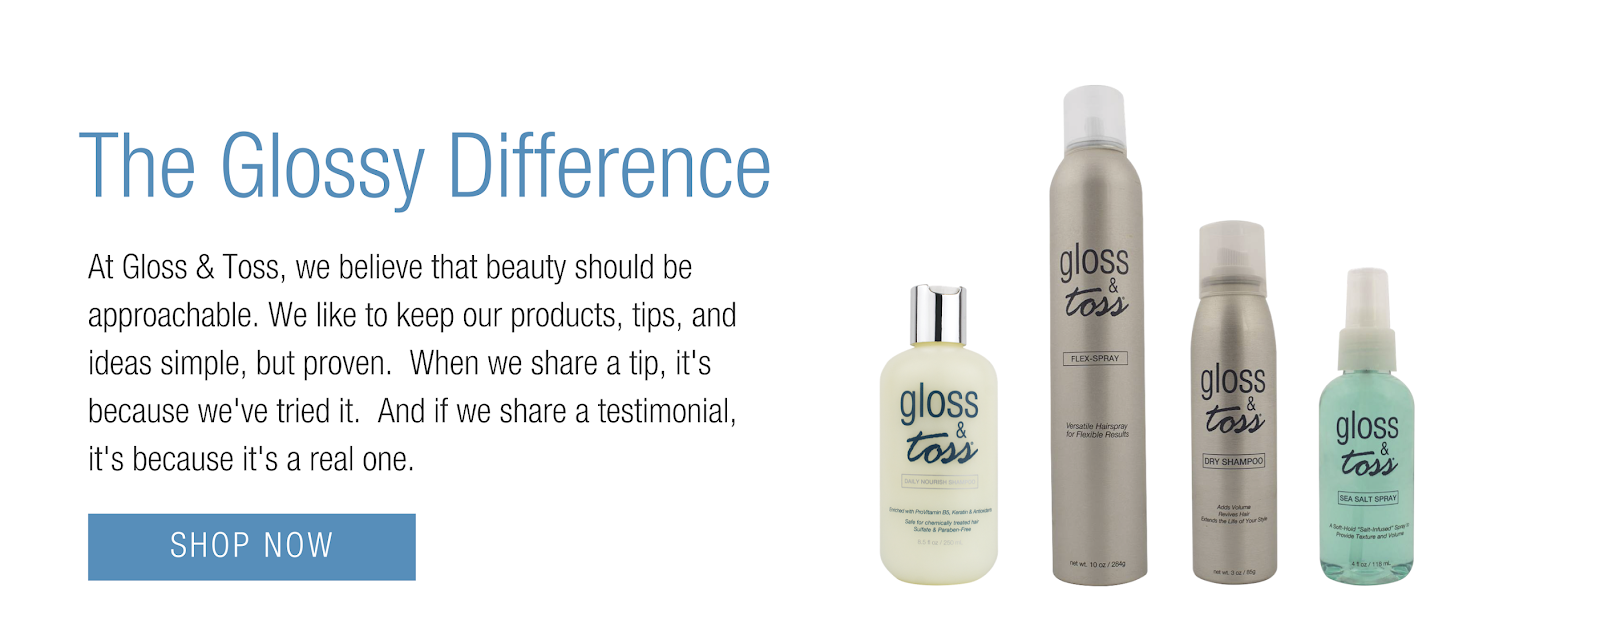 Experience the difference in hair care with Gloss & Toss